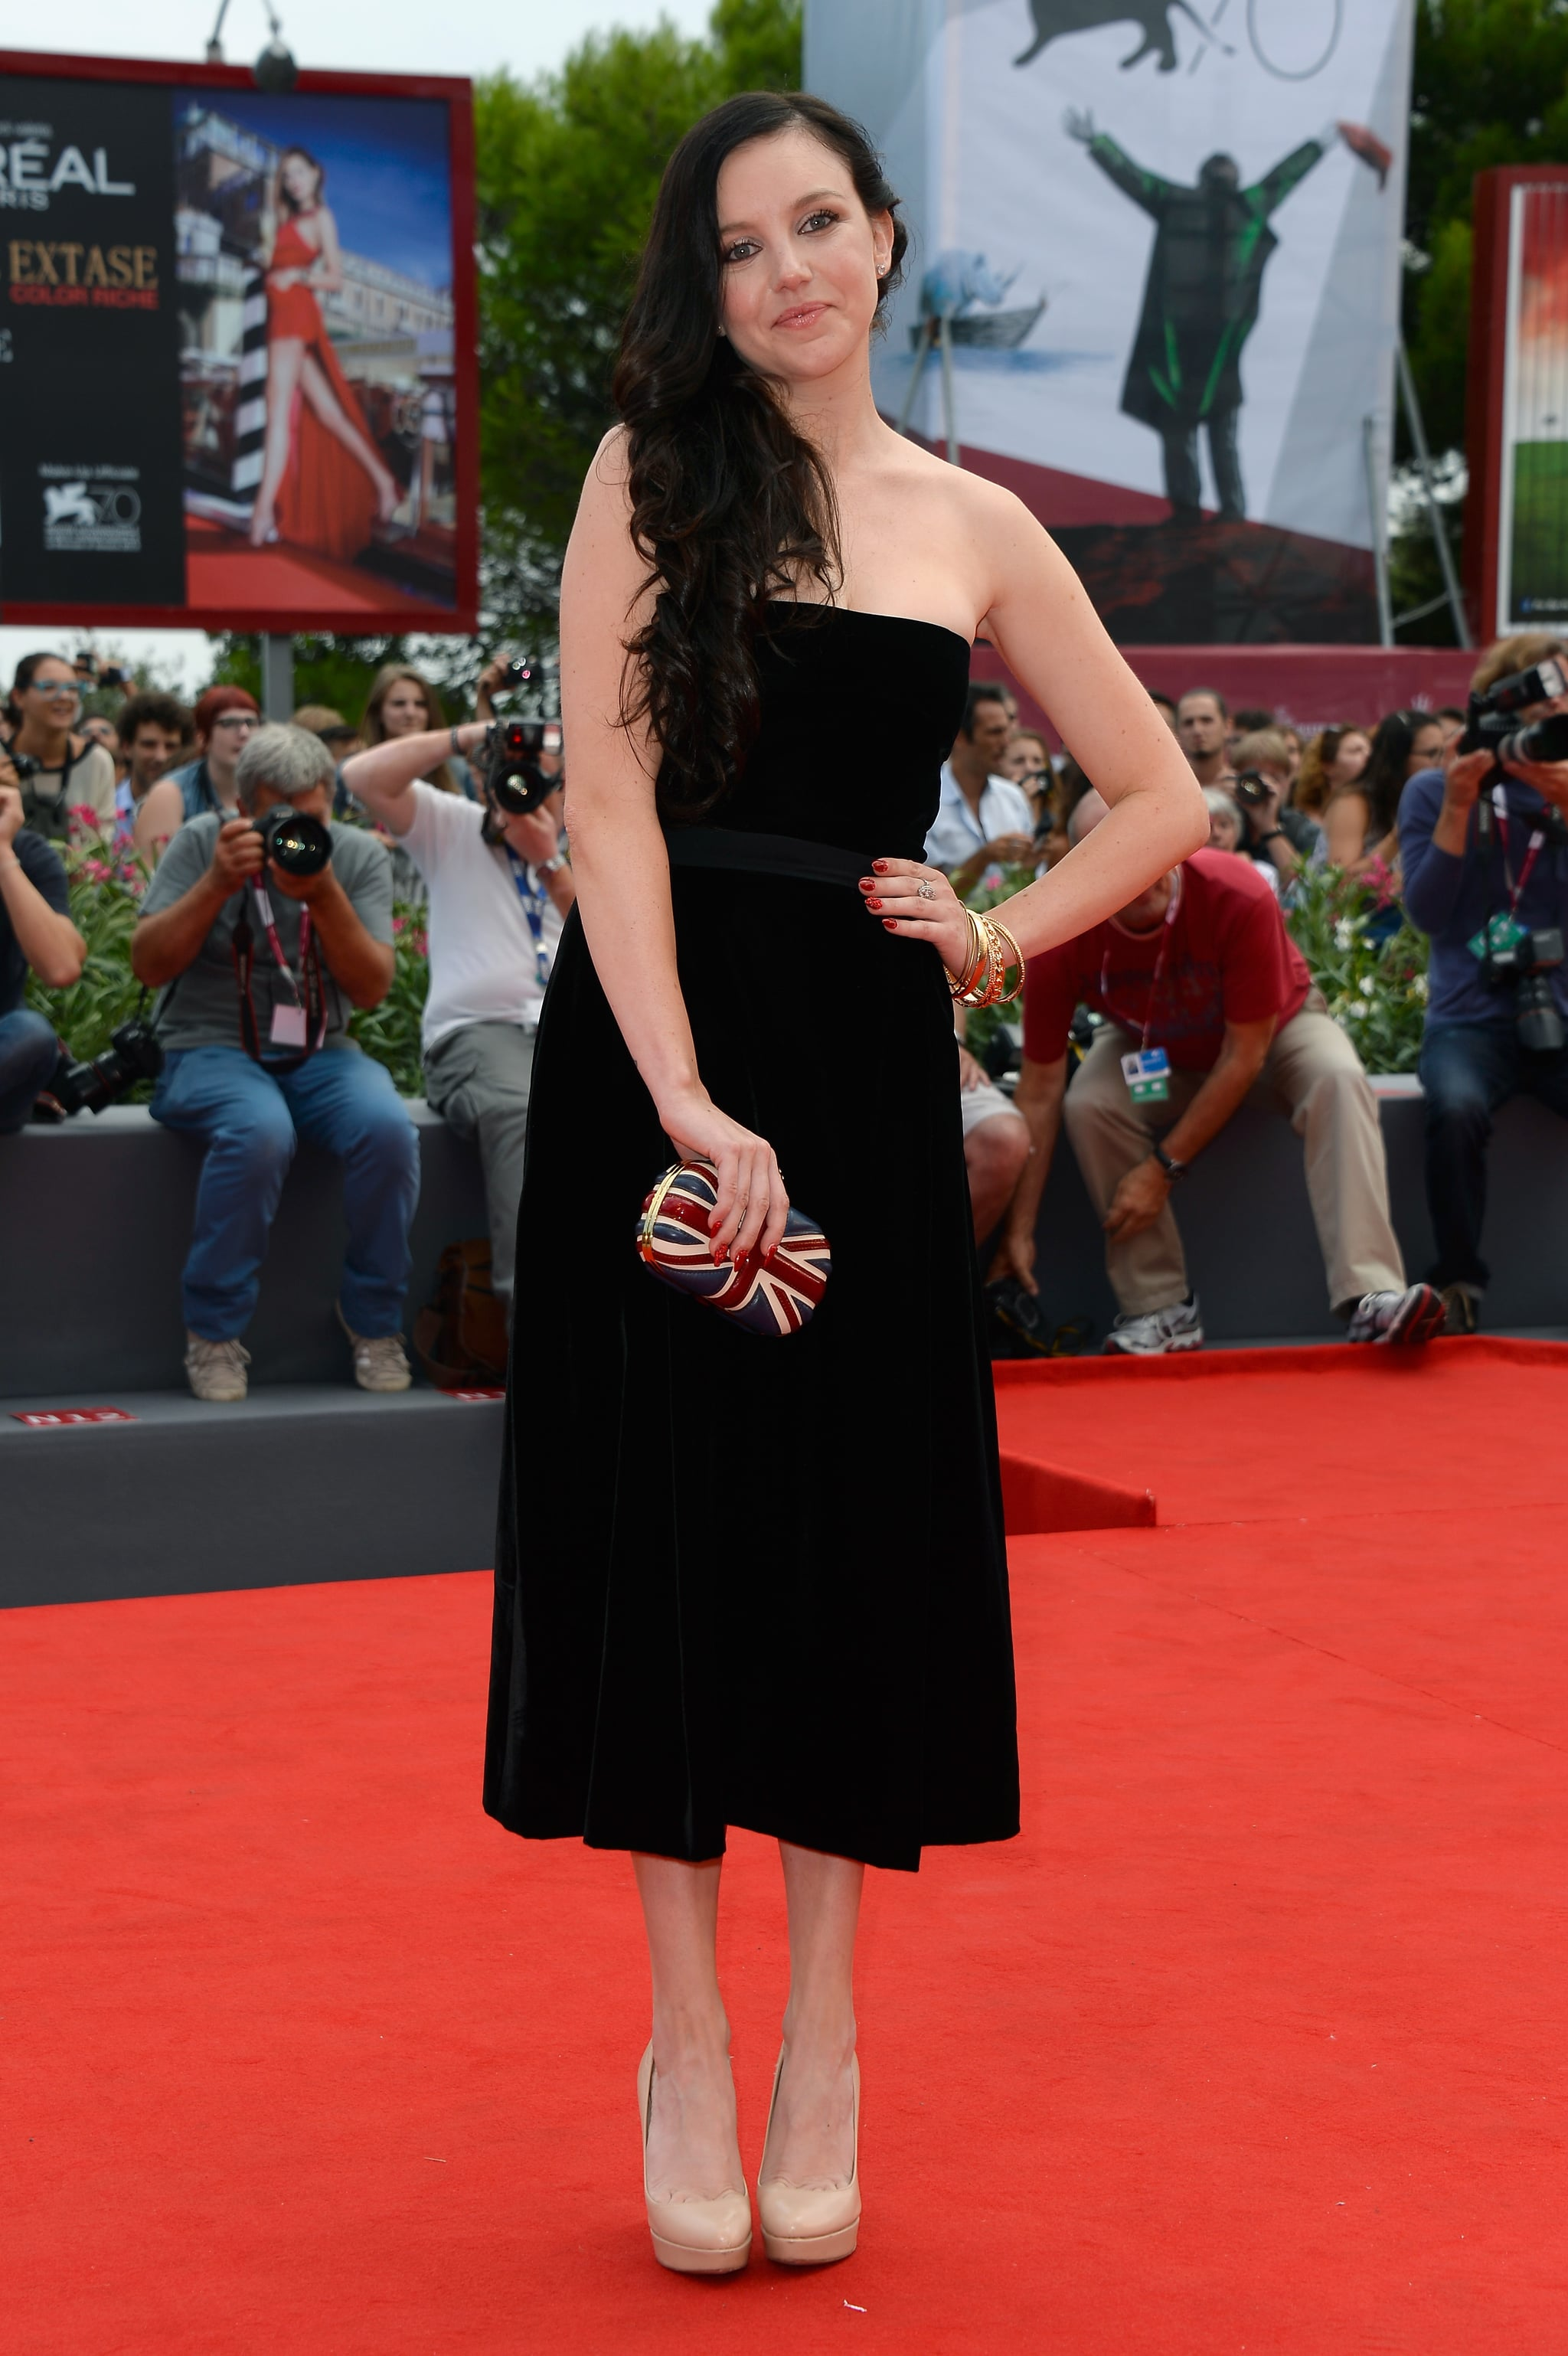 Actress Claudia Levy attended the Palo Alto premiere.